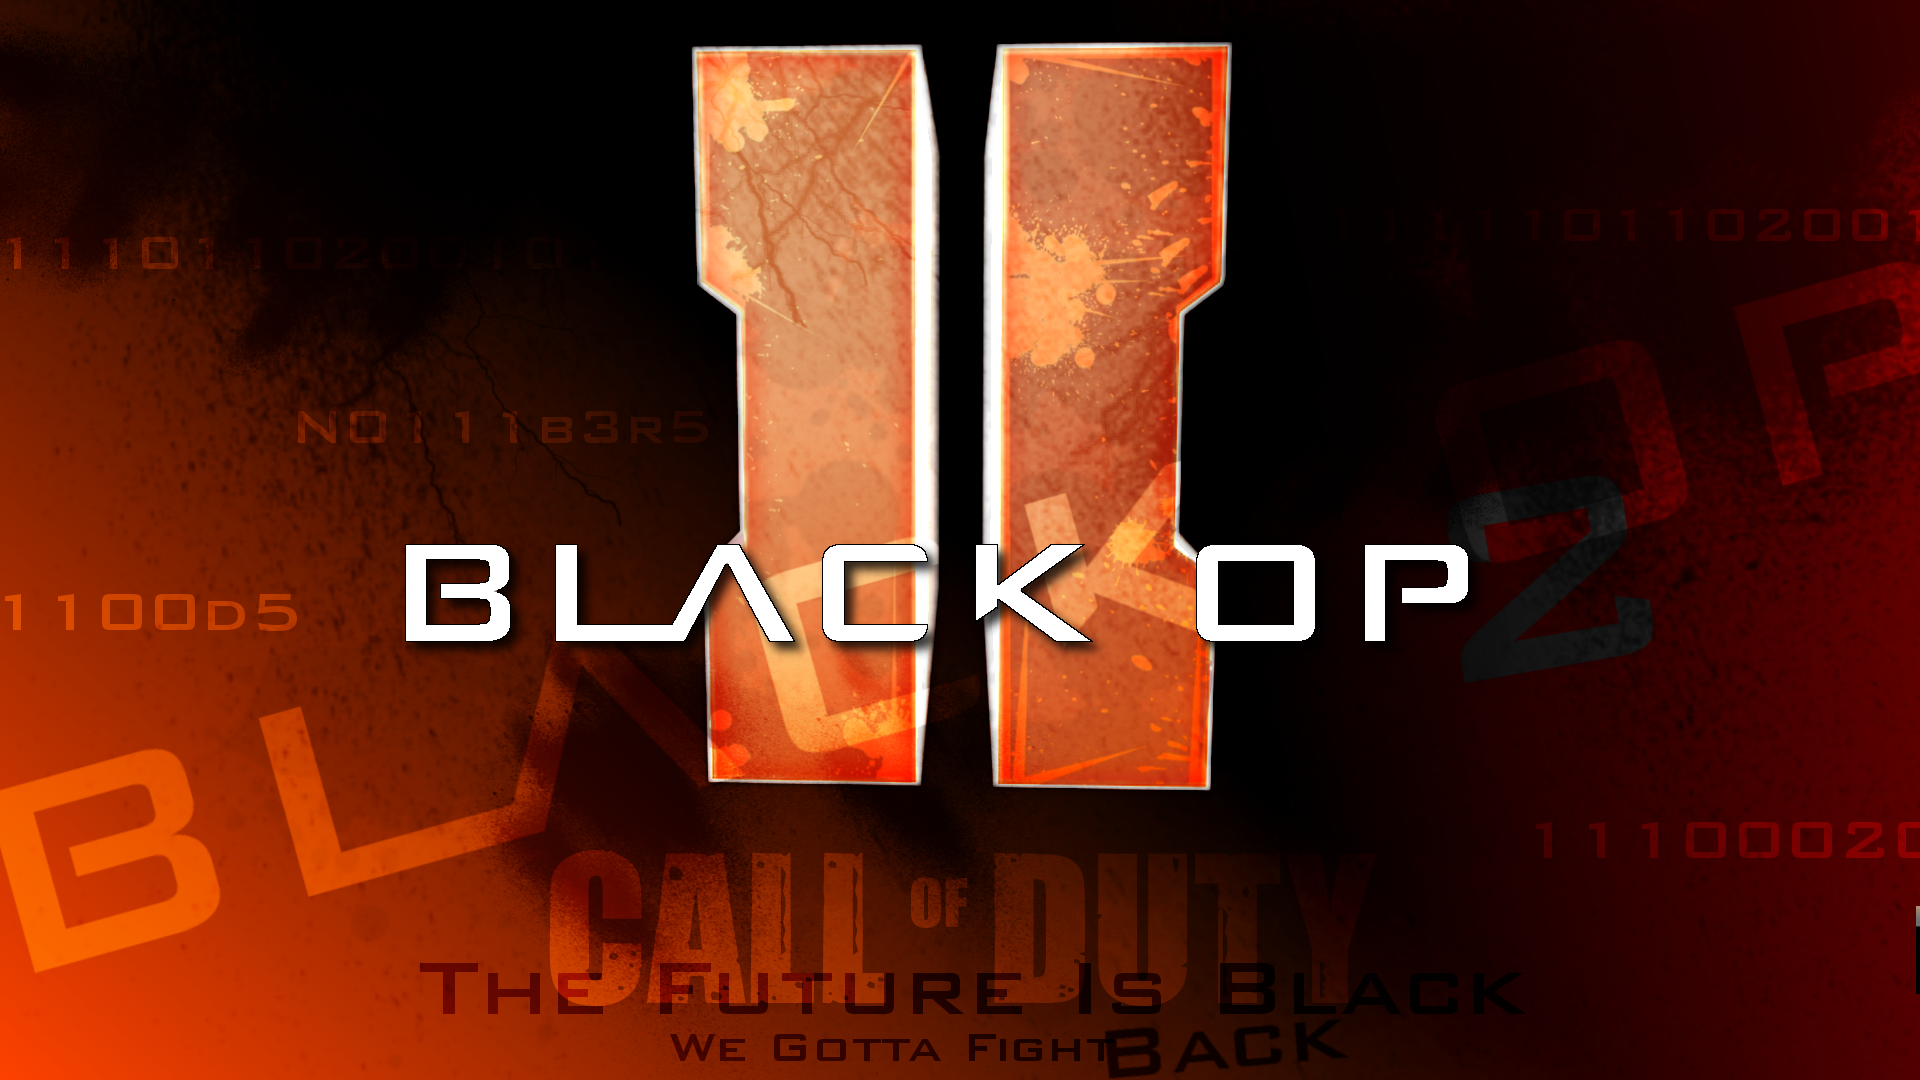 Black ops 2 wallpaer logo style by thesynchronized on deviantart black ops 2 wallpaer logo style by thesynchronized voltagebd